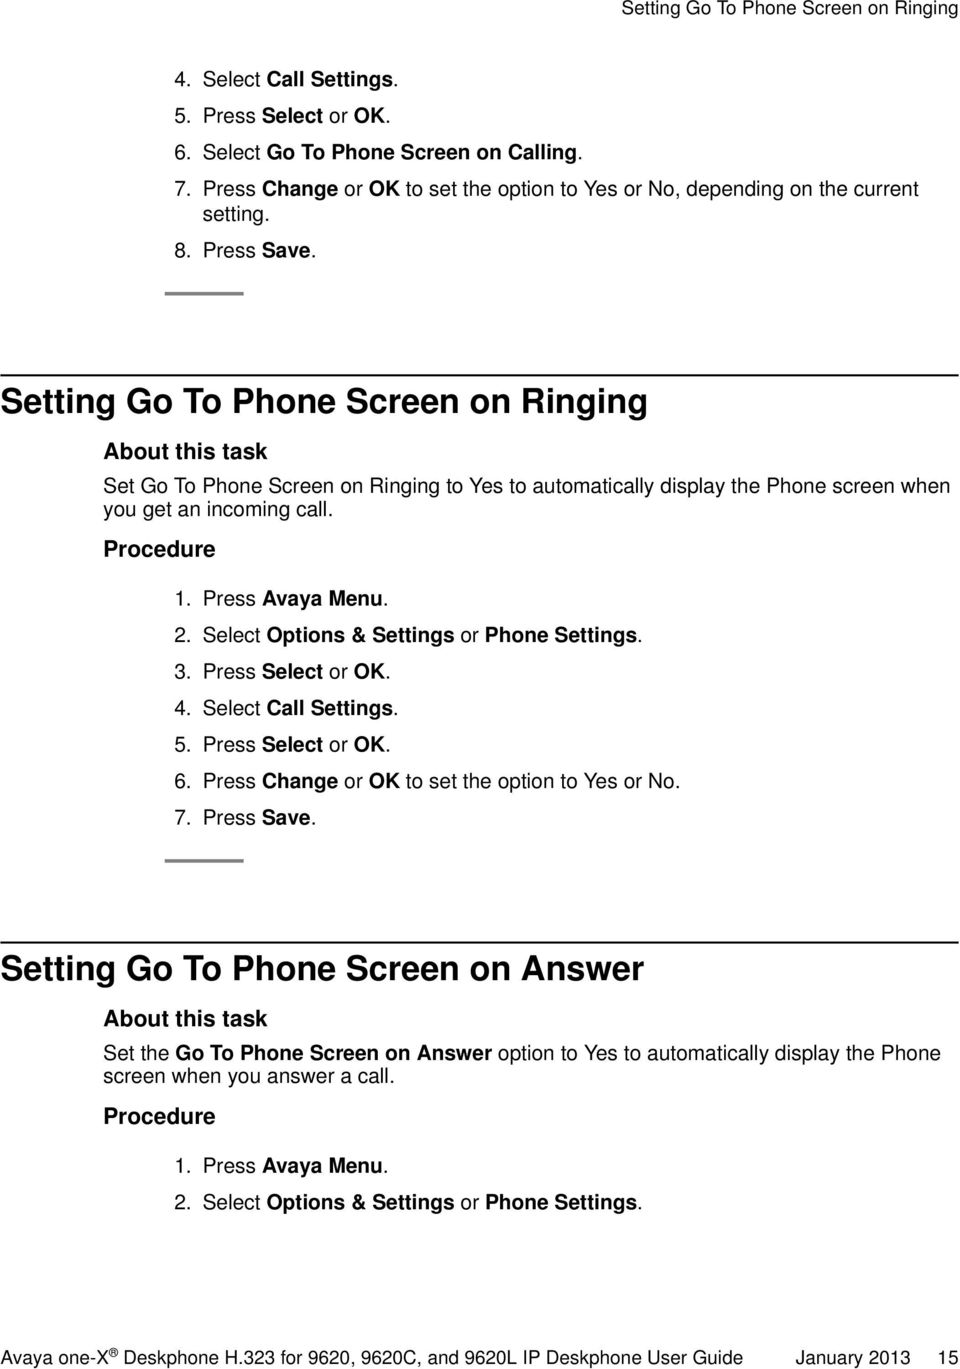 Setting Go To Phone Screen on Ringing Set Go To Phone Screen on Ringing to Yes to automatically display the Phone screen when you get an incoming call. 1. Press Avaya Menu. 2.